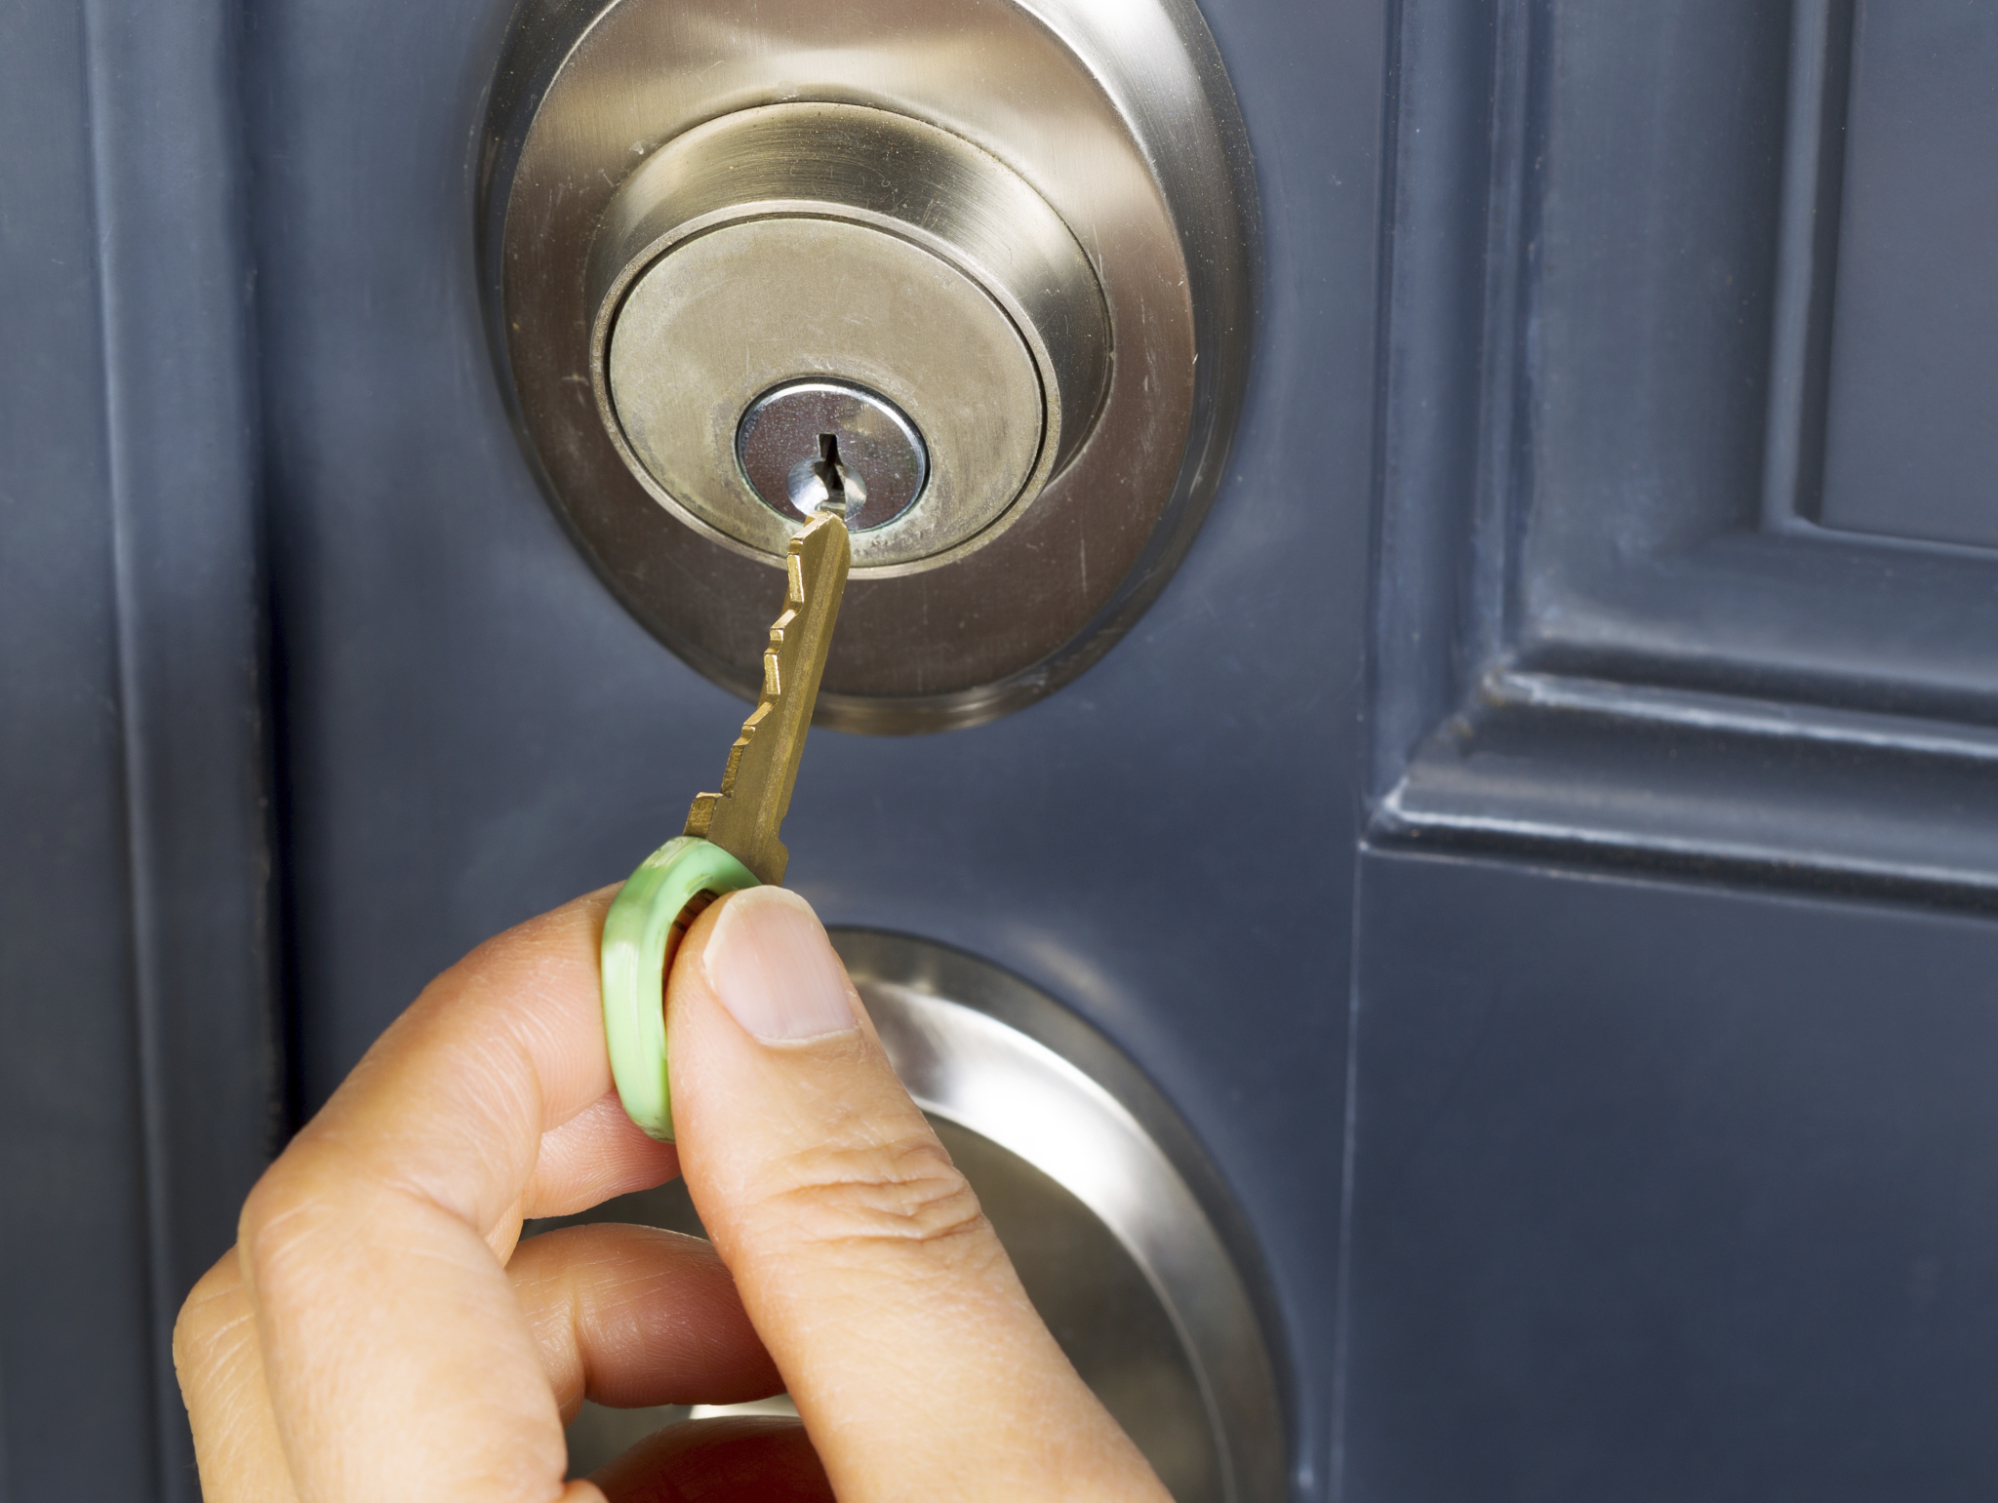 KeyMe aims to replace locksmiths with kiosks in more cities